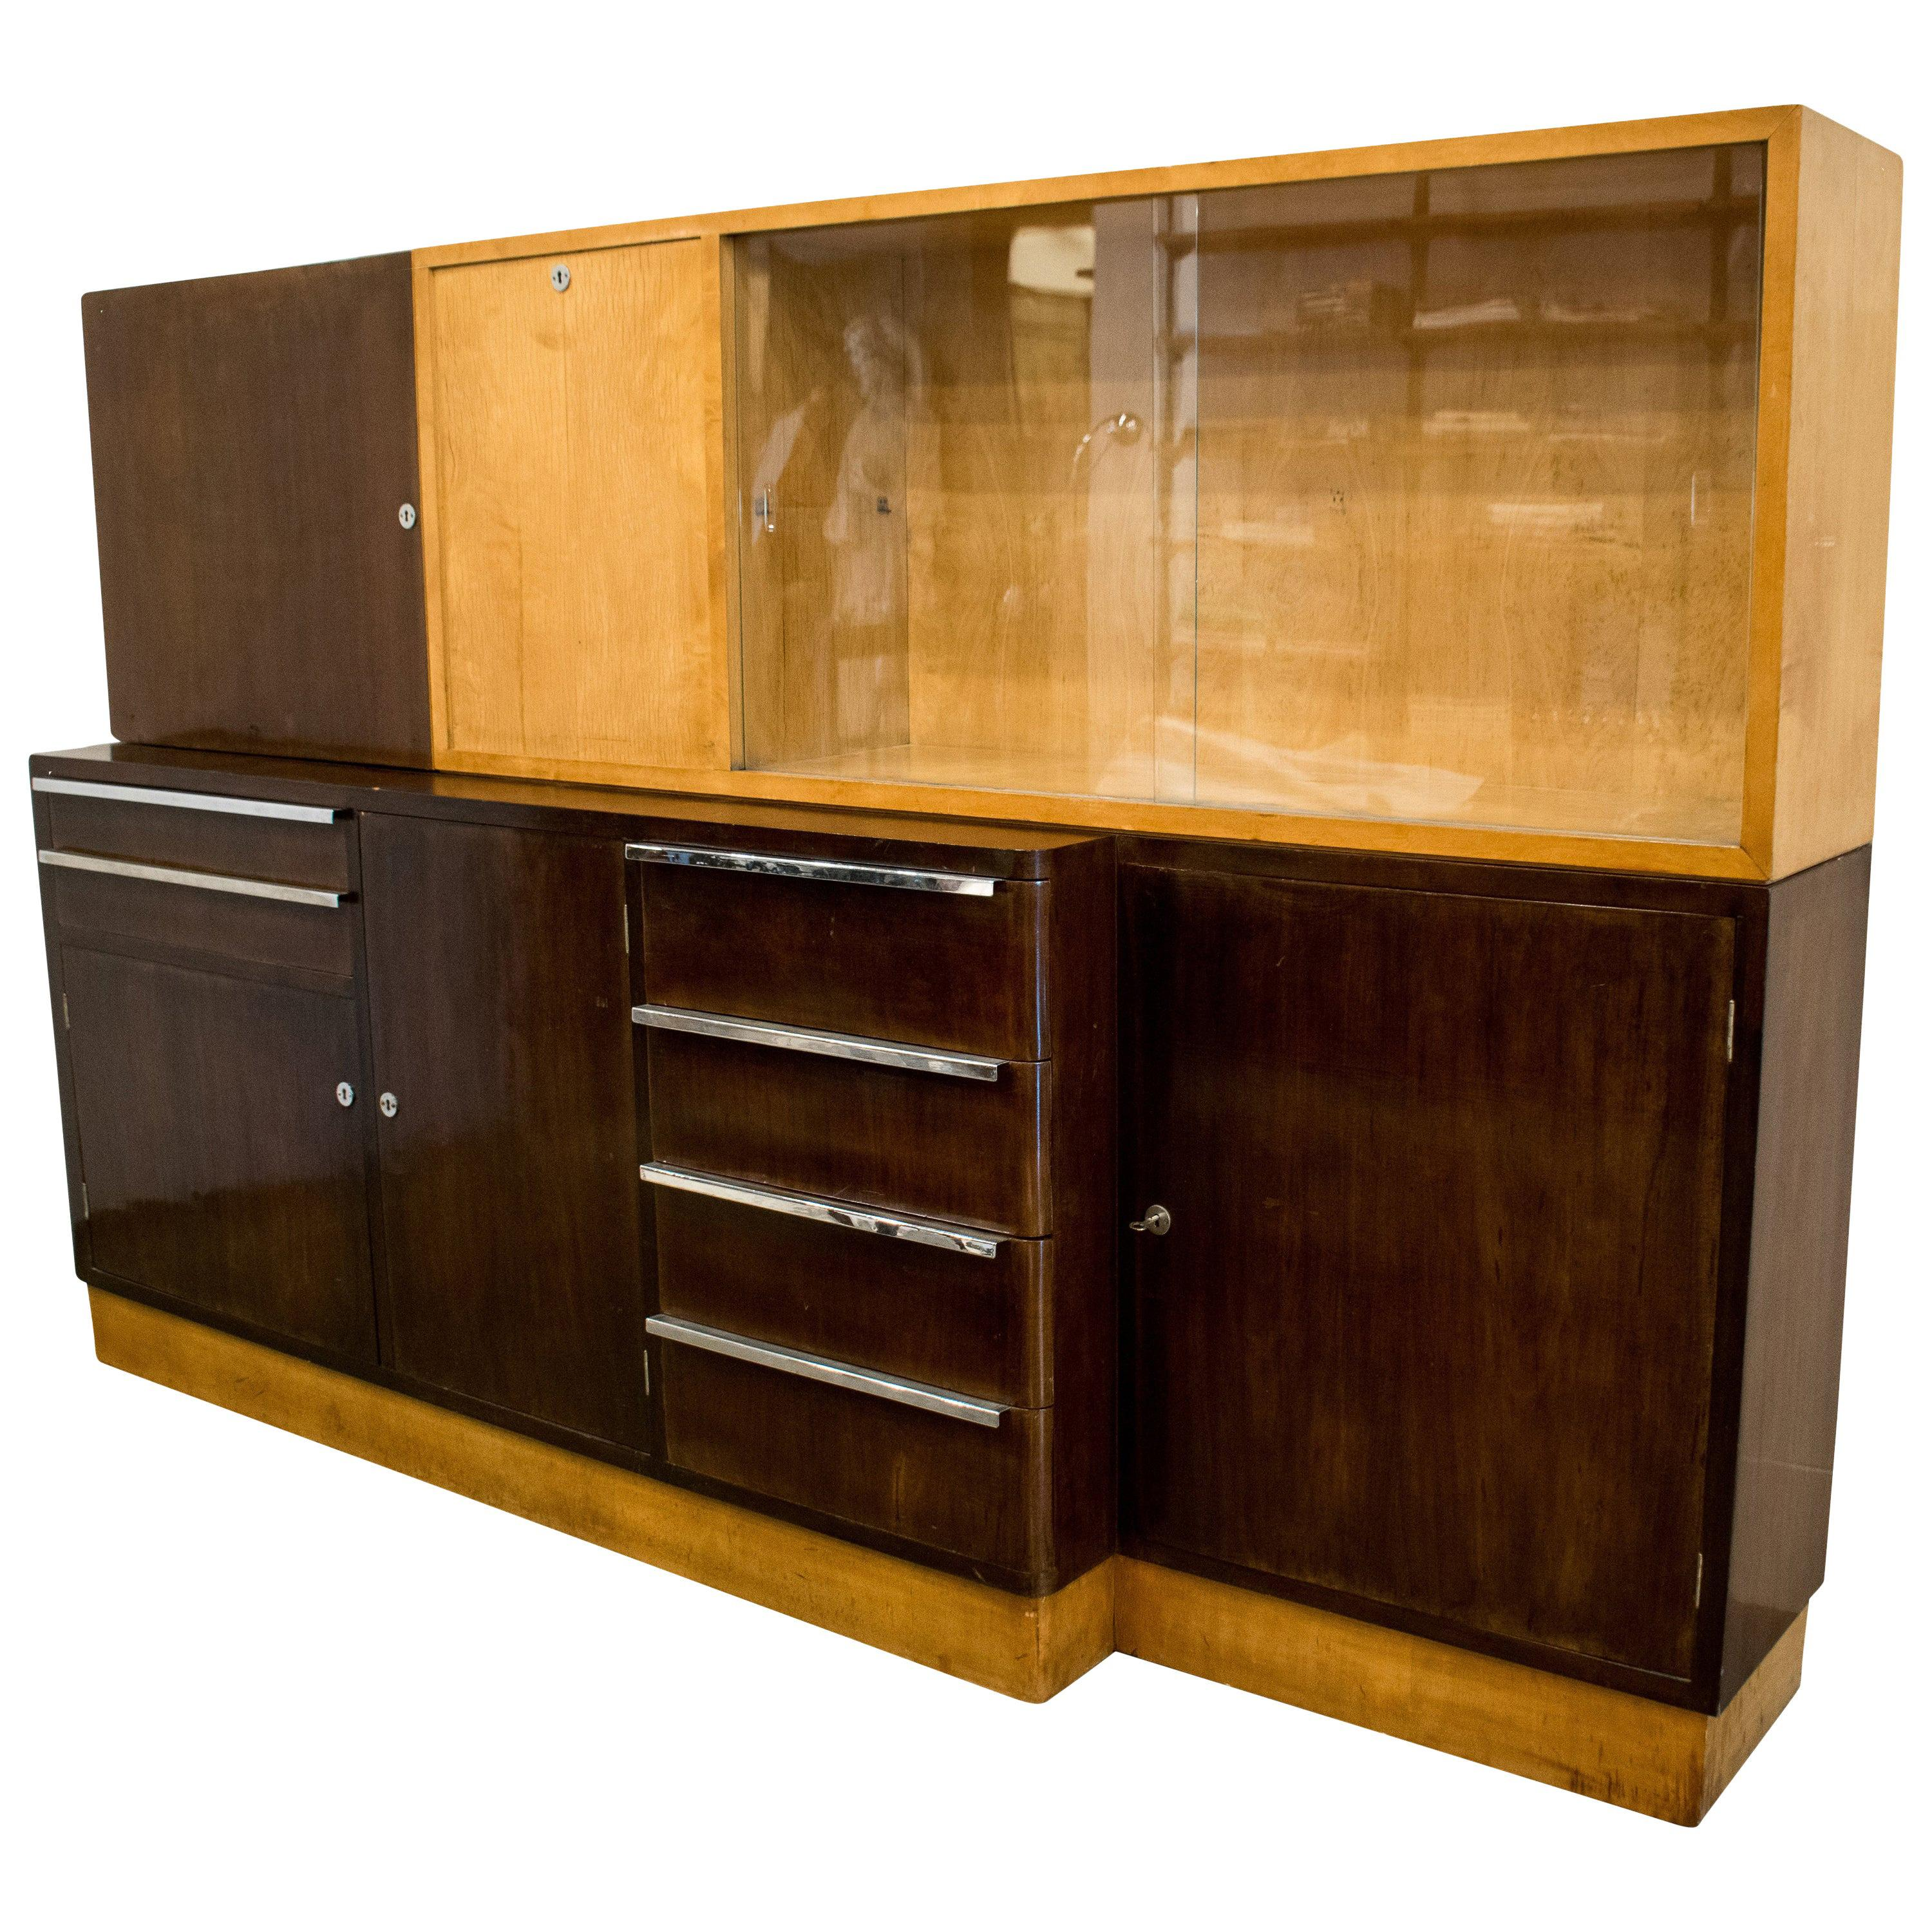 Italian Art Deco Cabinet of Birch and Rosewood, 1930-1940